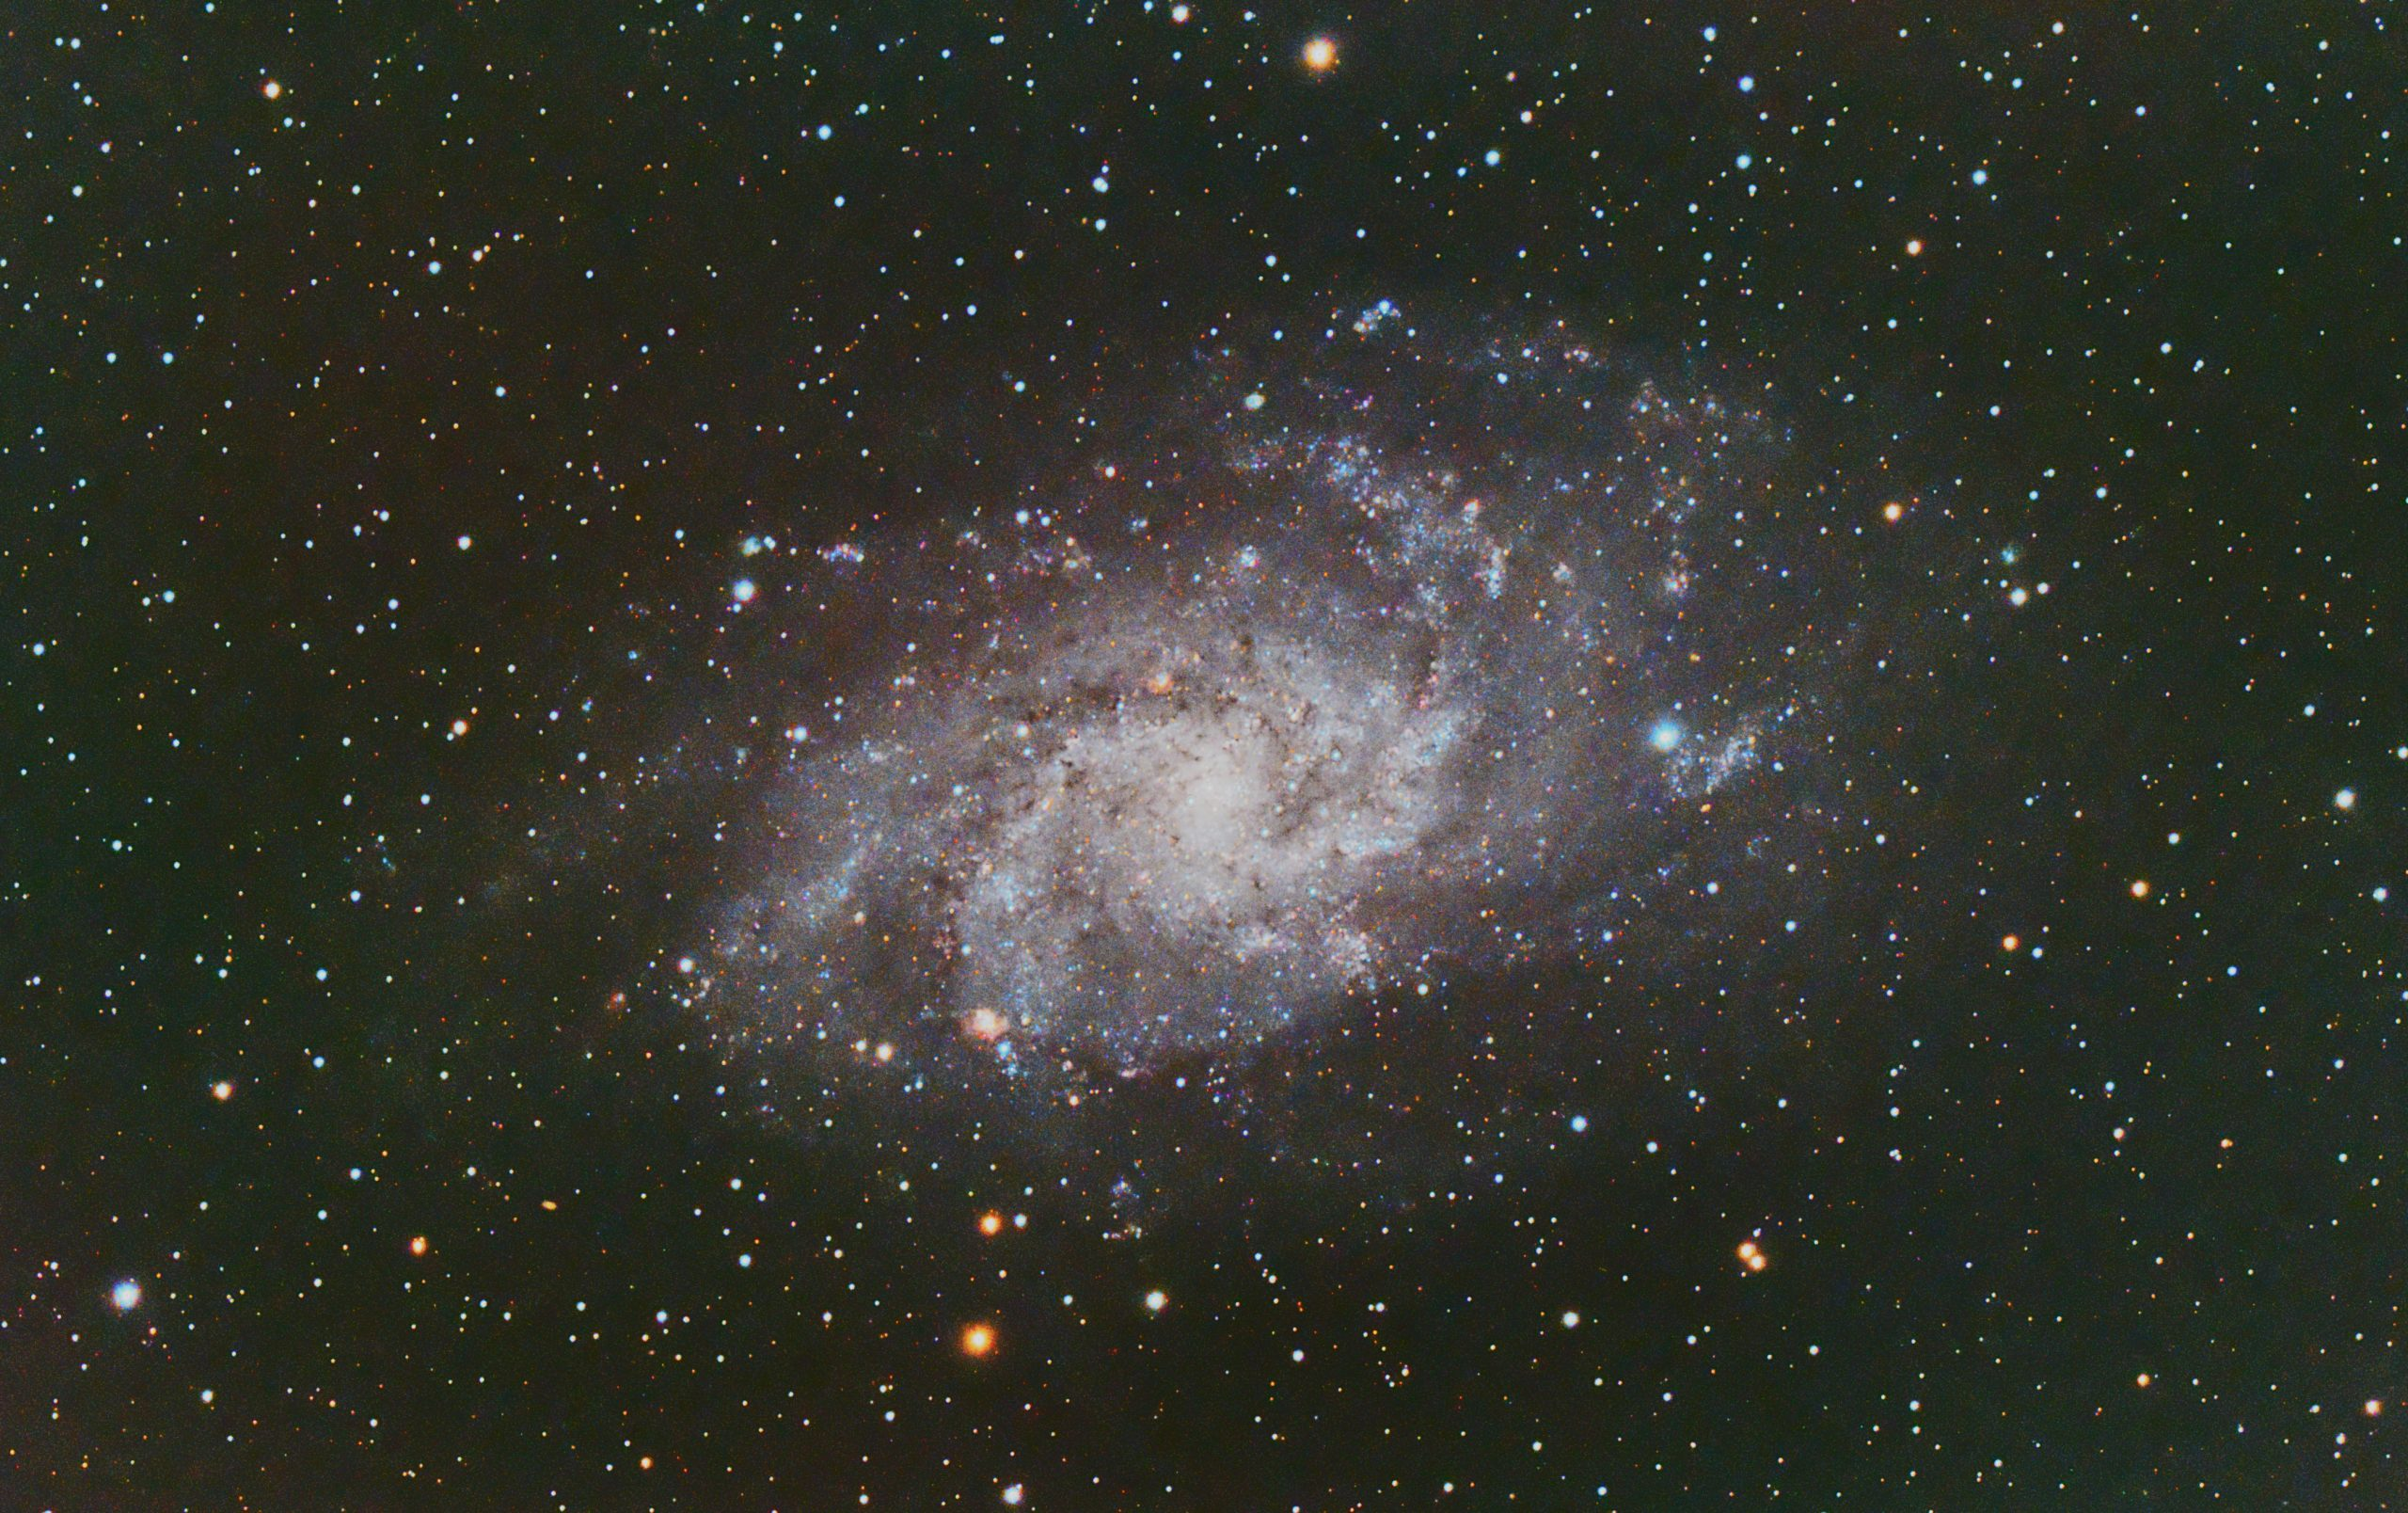 """M33 (Pat Devine) Edinburgh Bortle 7/8 zone, 11th Step 2021 Celestron RASA 8"""", ZWO 183mc pro, Optolong l-pro filter, ZWO ZWO ASI Air Pro, Sky-Watcher HEQ5 Pro 36 X 60s and 22x 120s lights; with flats, darks and bias, Gain 122 at -10C. Processed in APP and Pixinsight (small crop to get rid of annoying gradient that resisted other attempt to process it away)"""